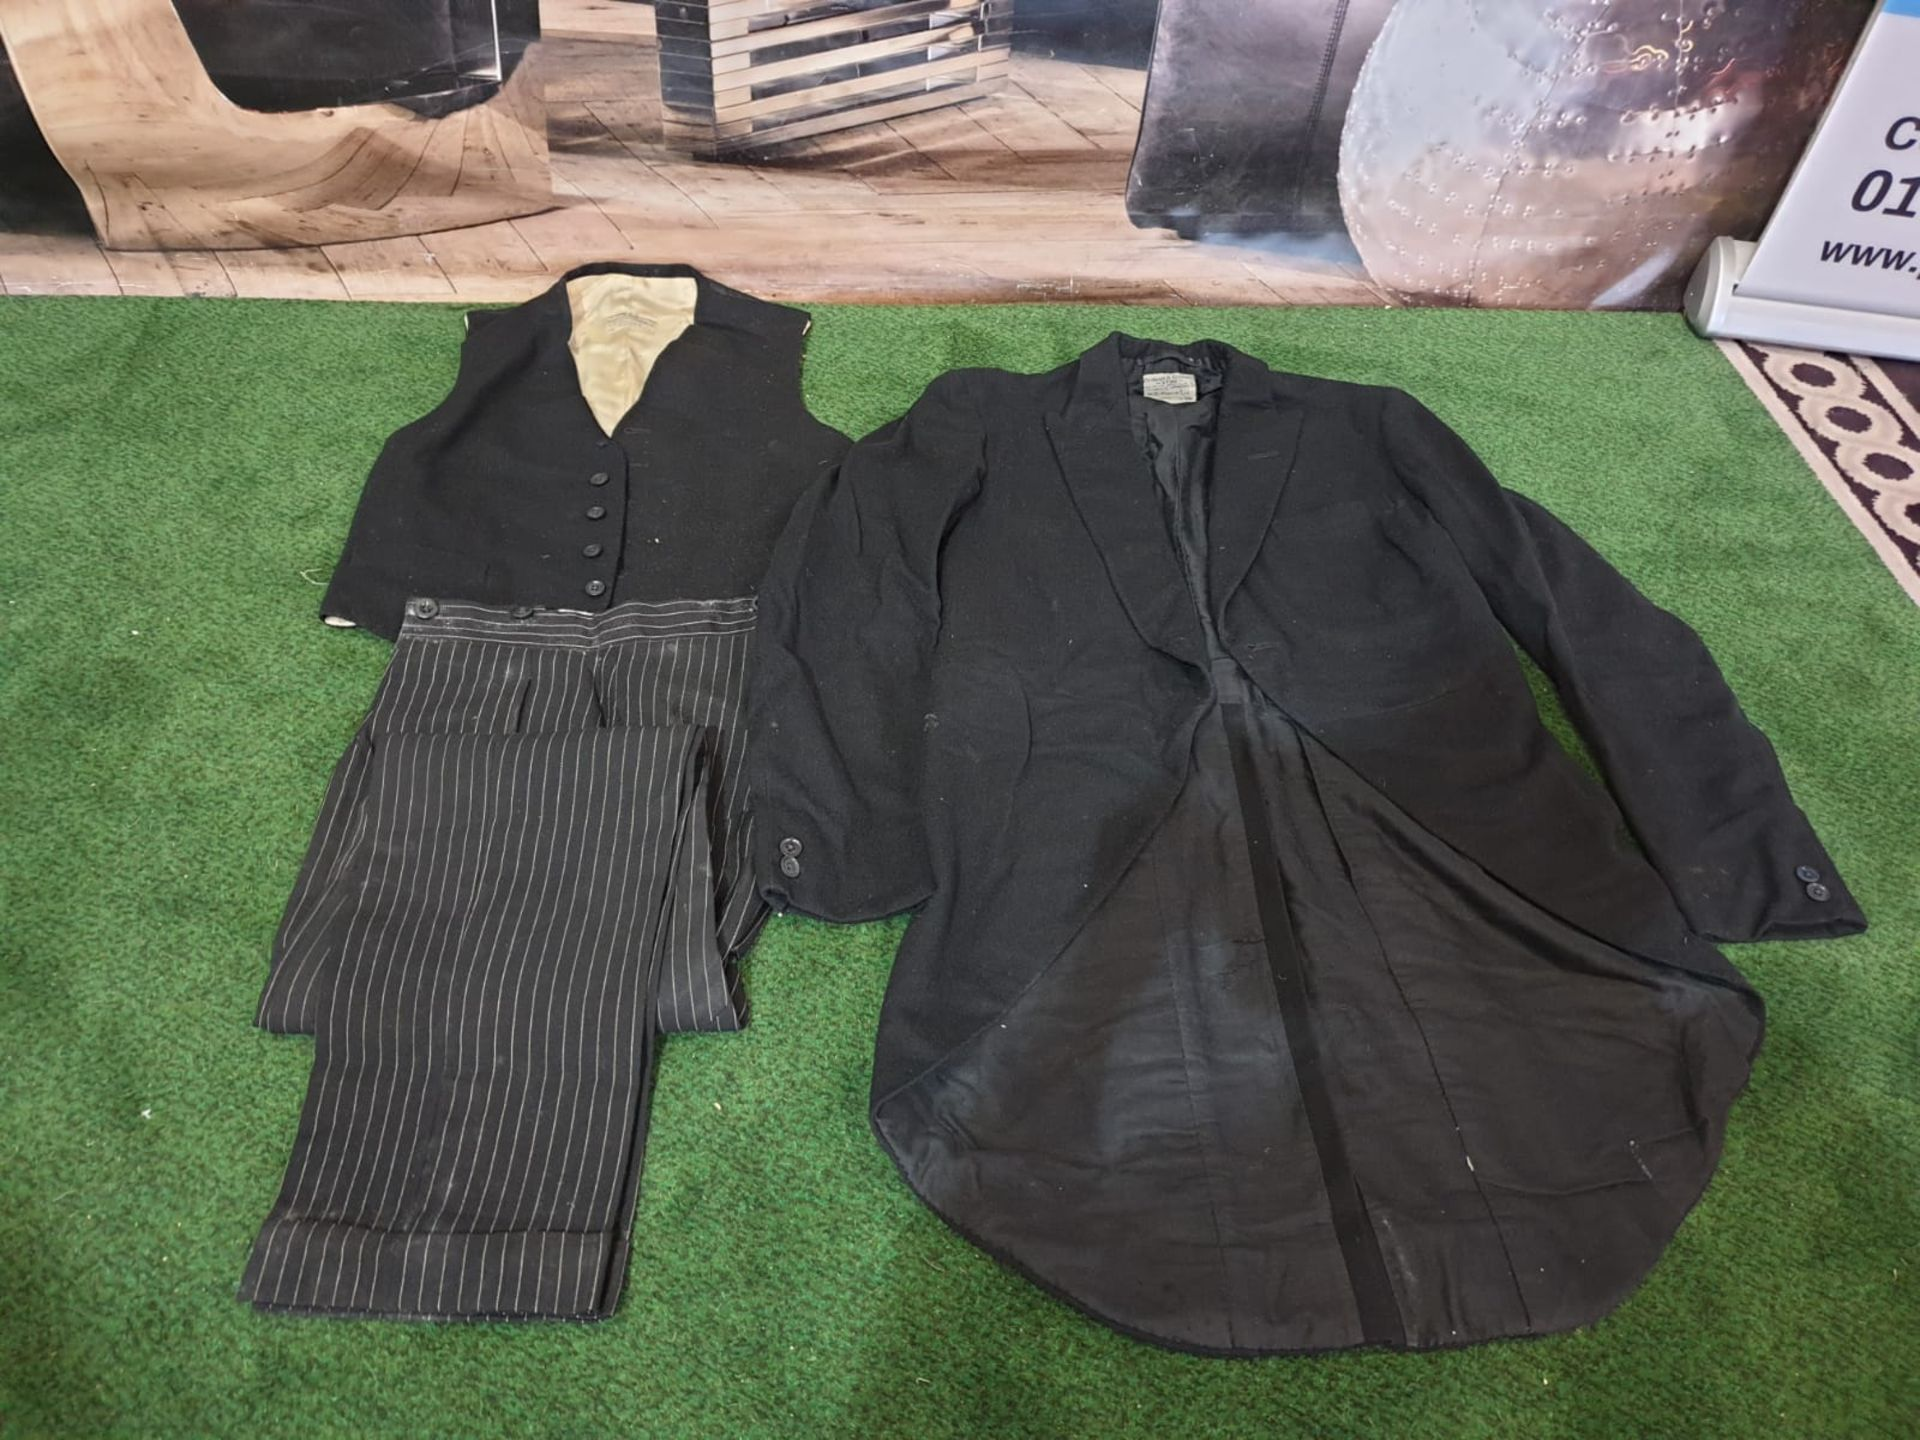 A Denman and Goddard Ltd 3 piece Eton suit consists of morning tailcoat, 2 x waistcoats and 2 x